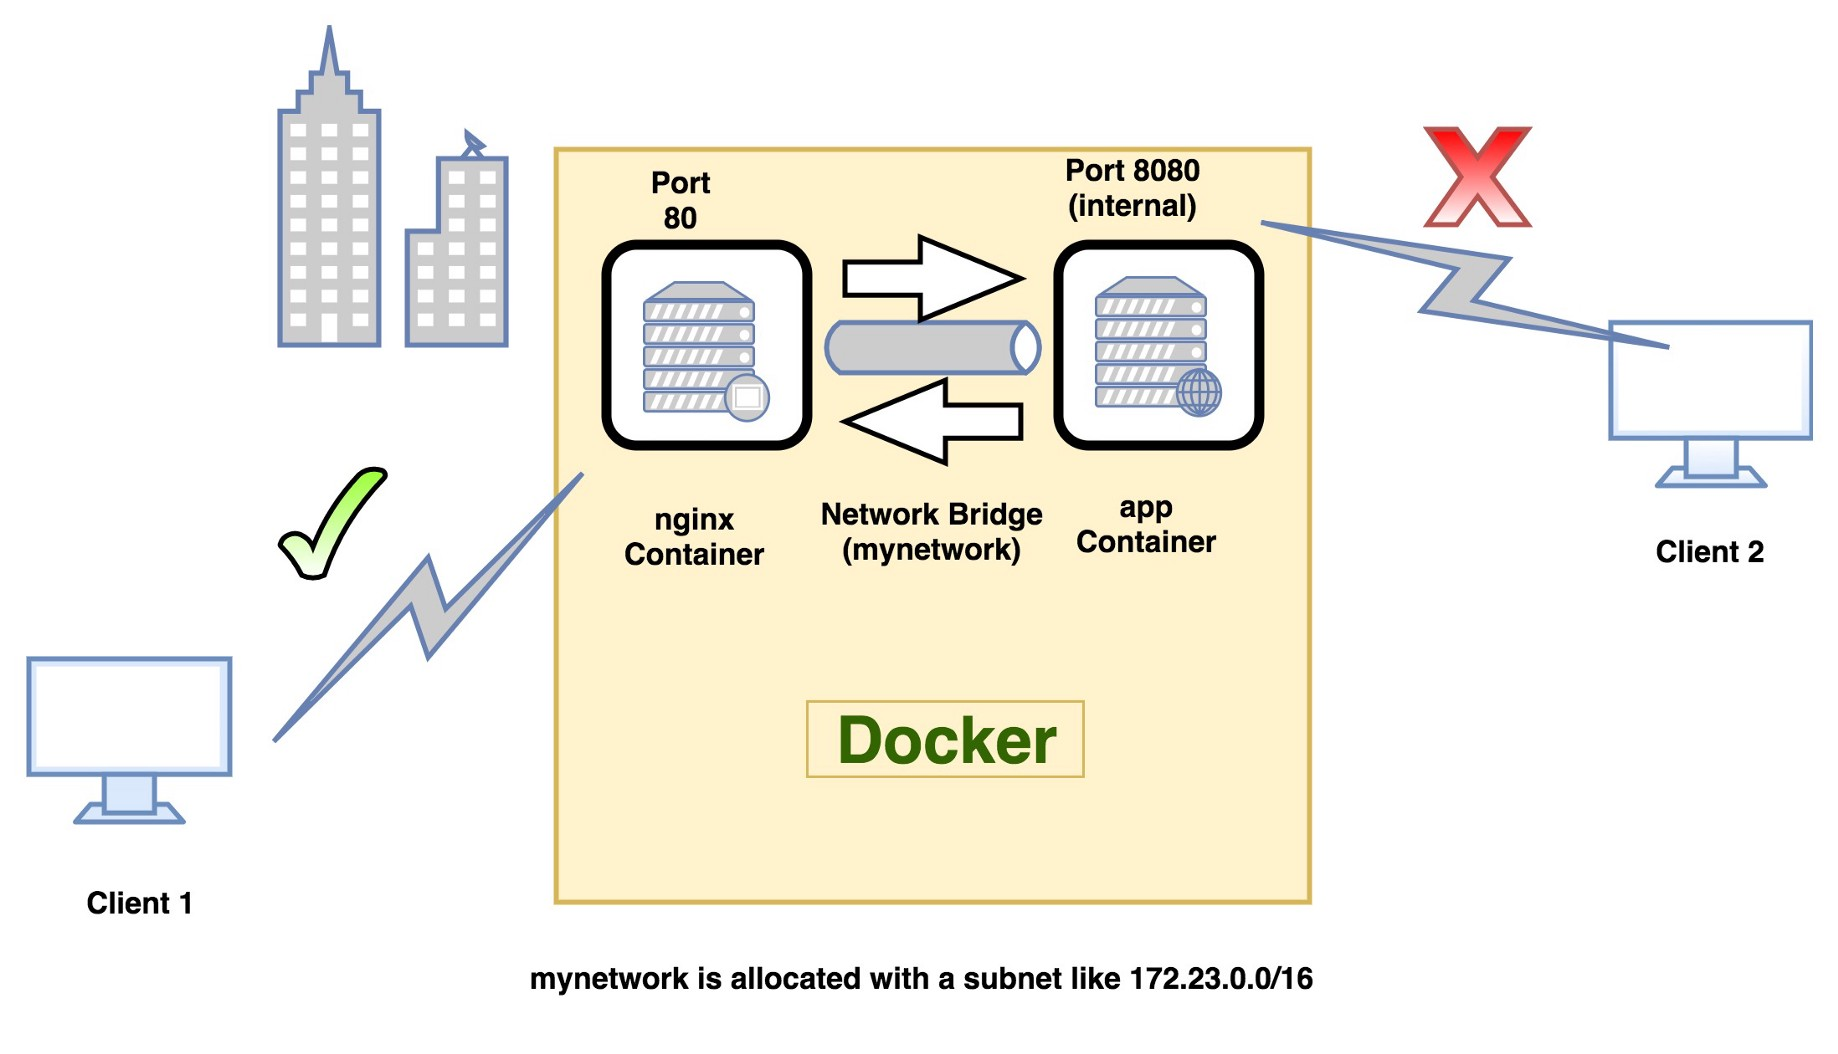 Deploying Cloud Services & Applications Properly With Docker